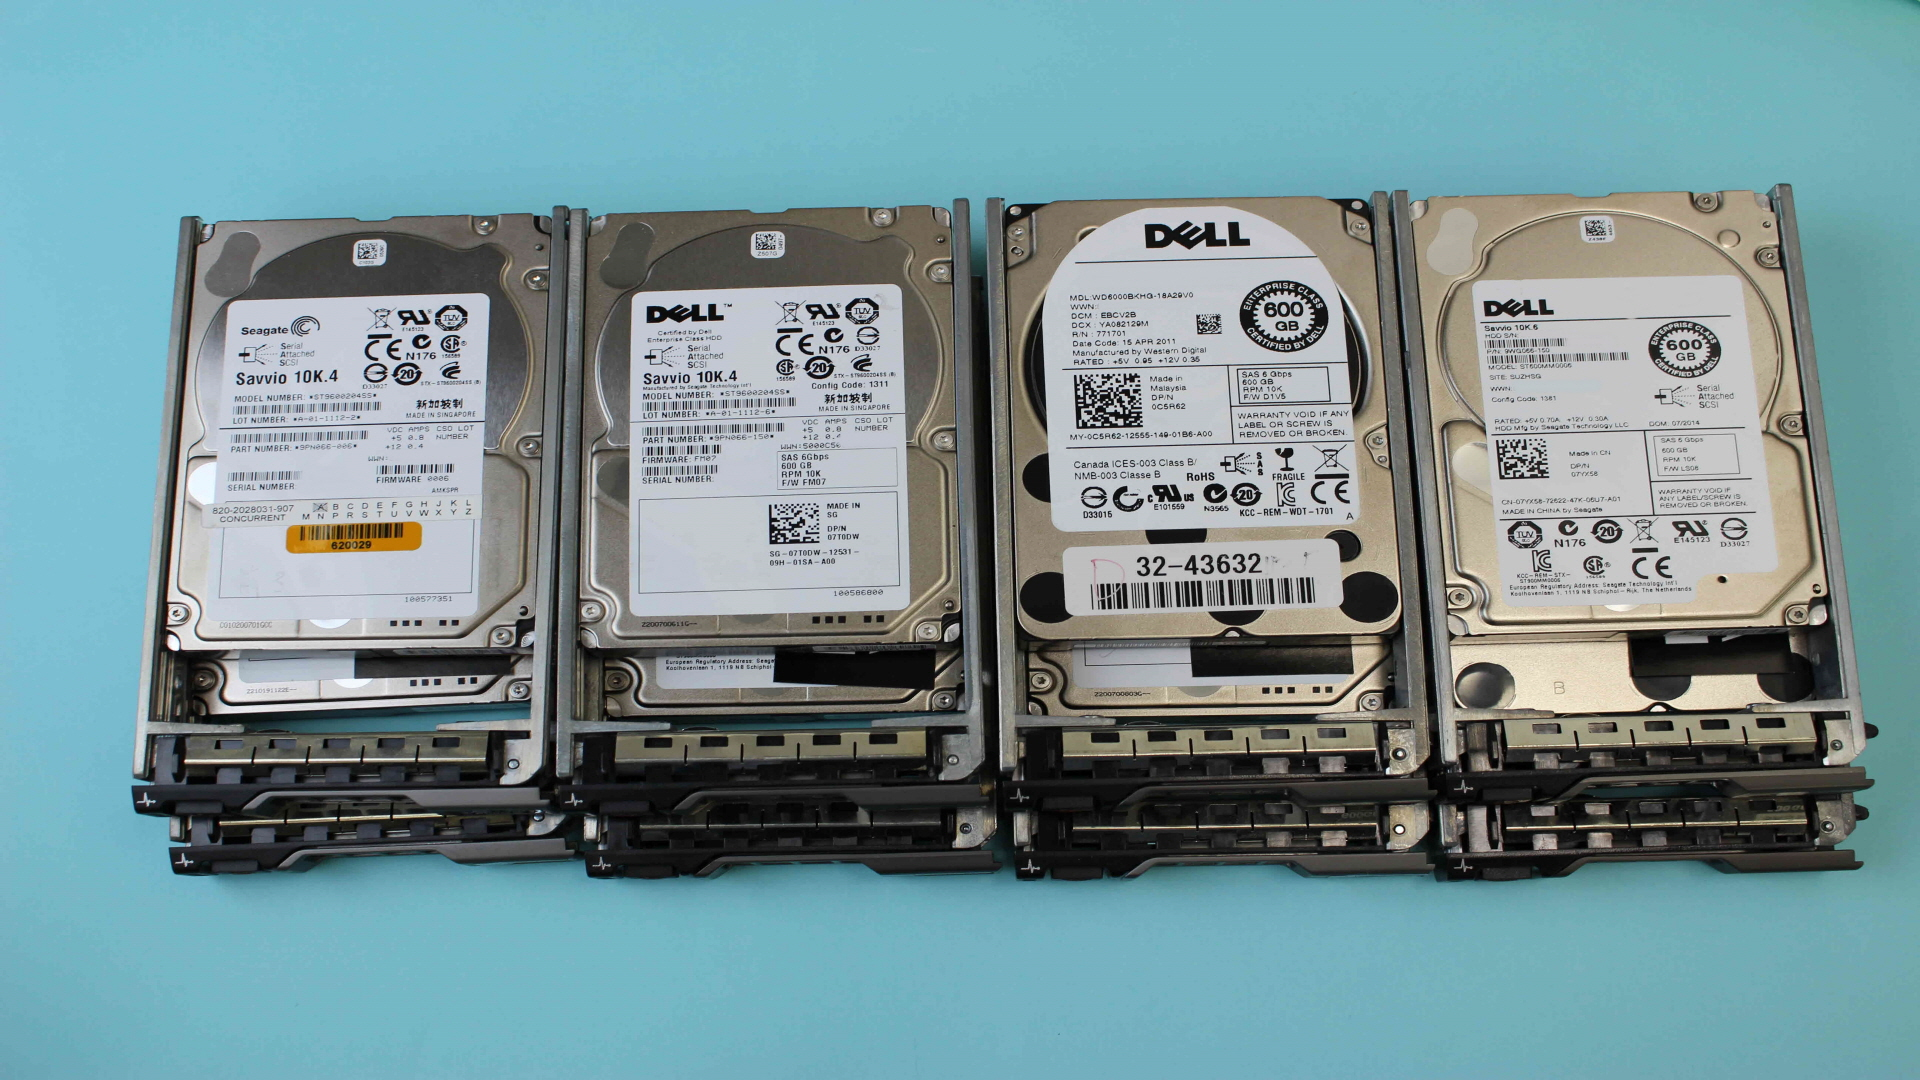 dell-power-edge-r710-recovery